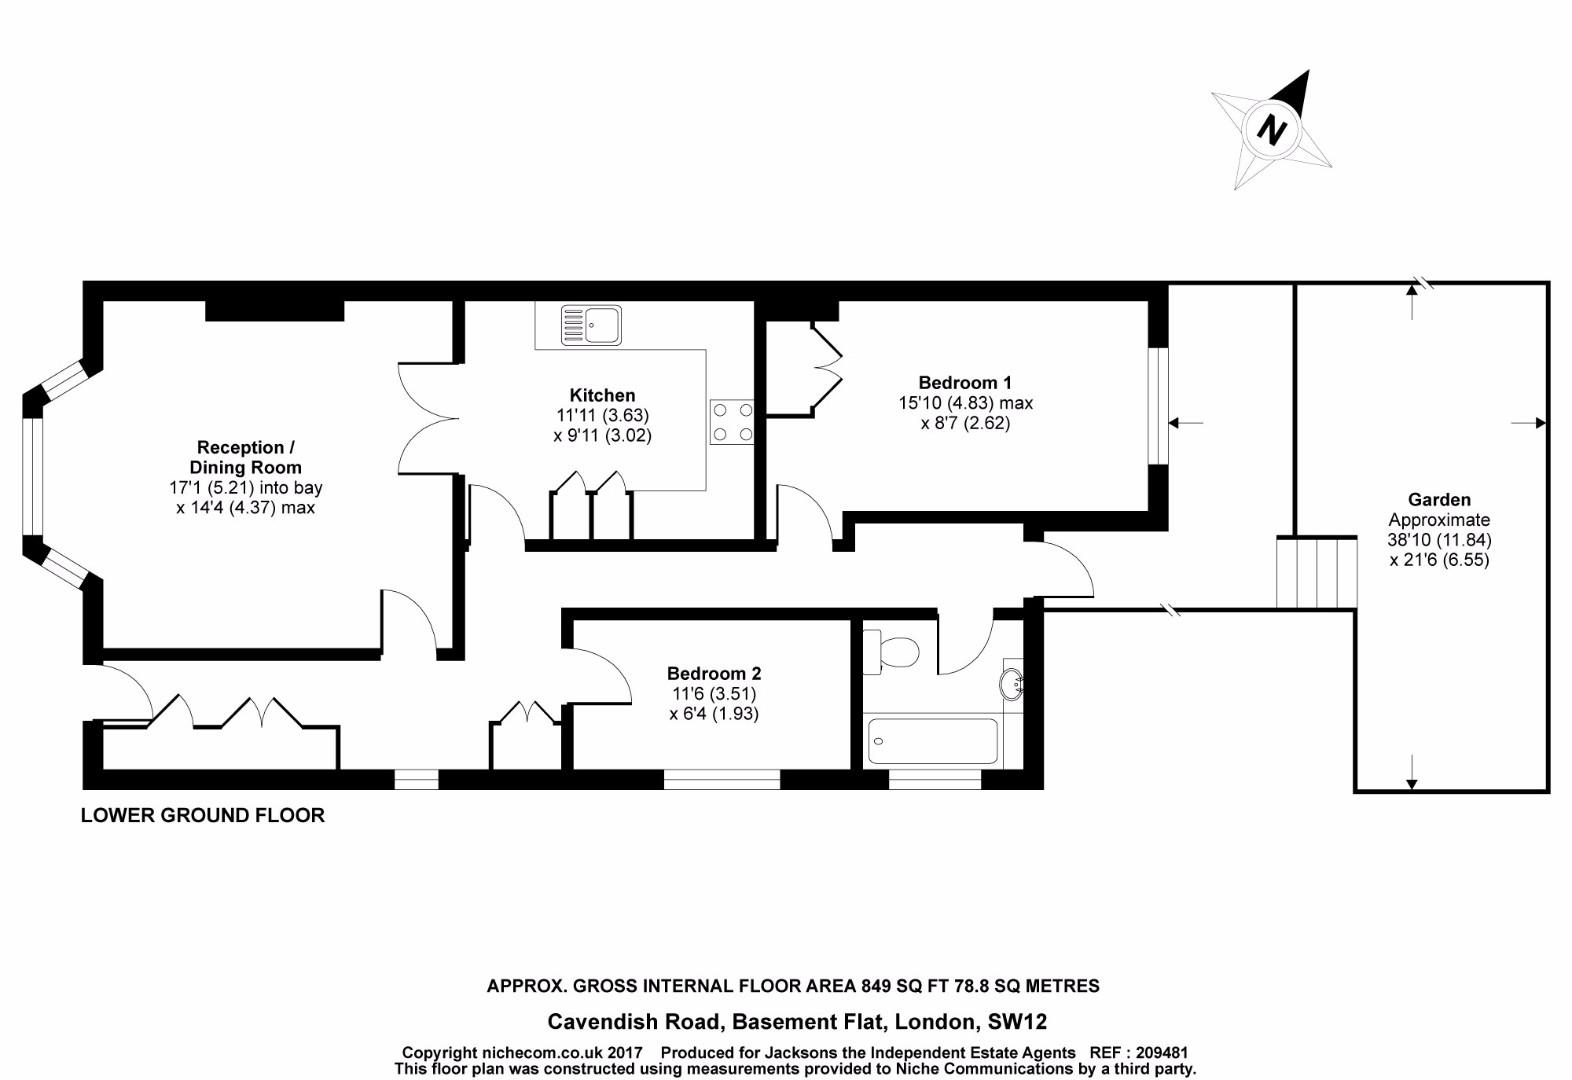 360hometours additionally Floorplans moreover Plans To Build A House likewise Real Estate Floor Plan also Floorplans Estate Agents. on 2d floor plans for estate agents